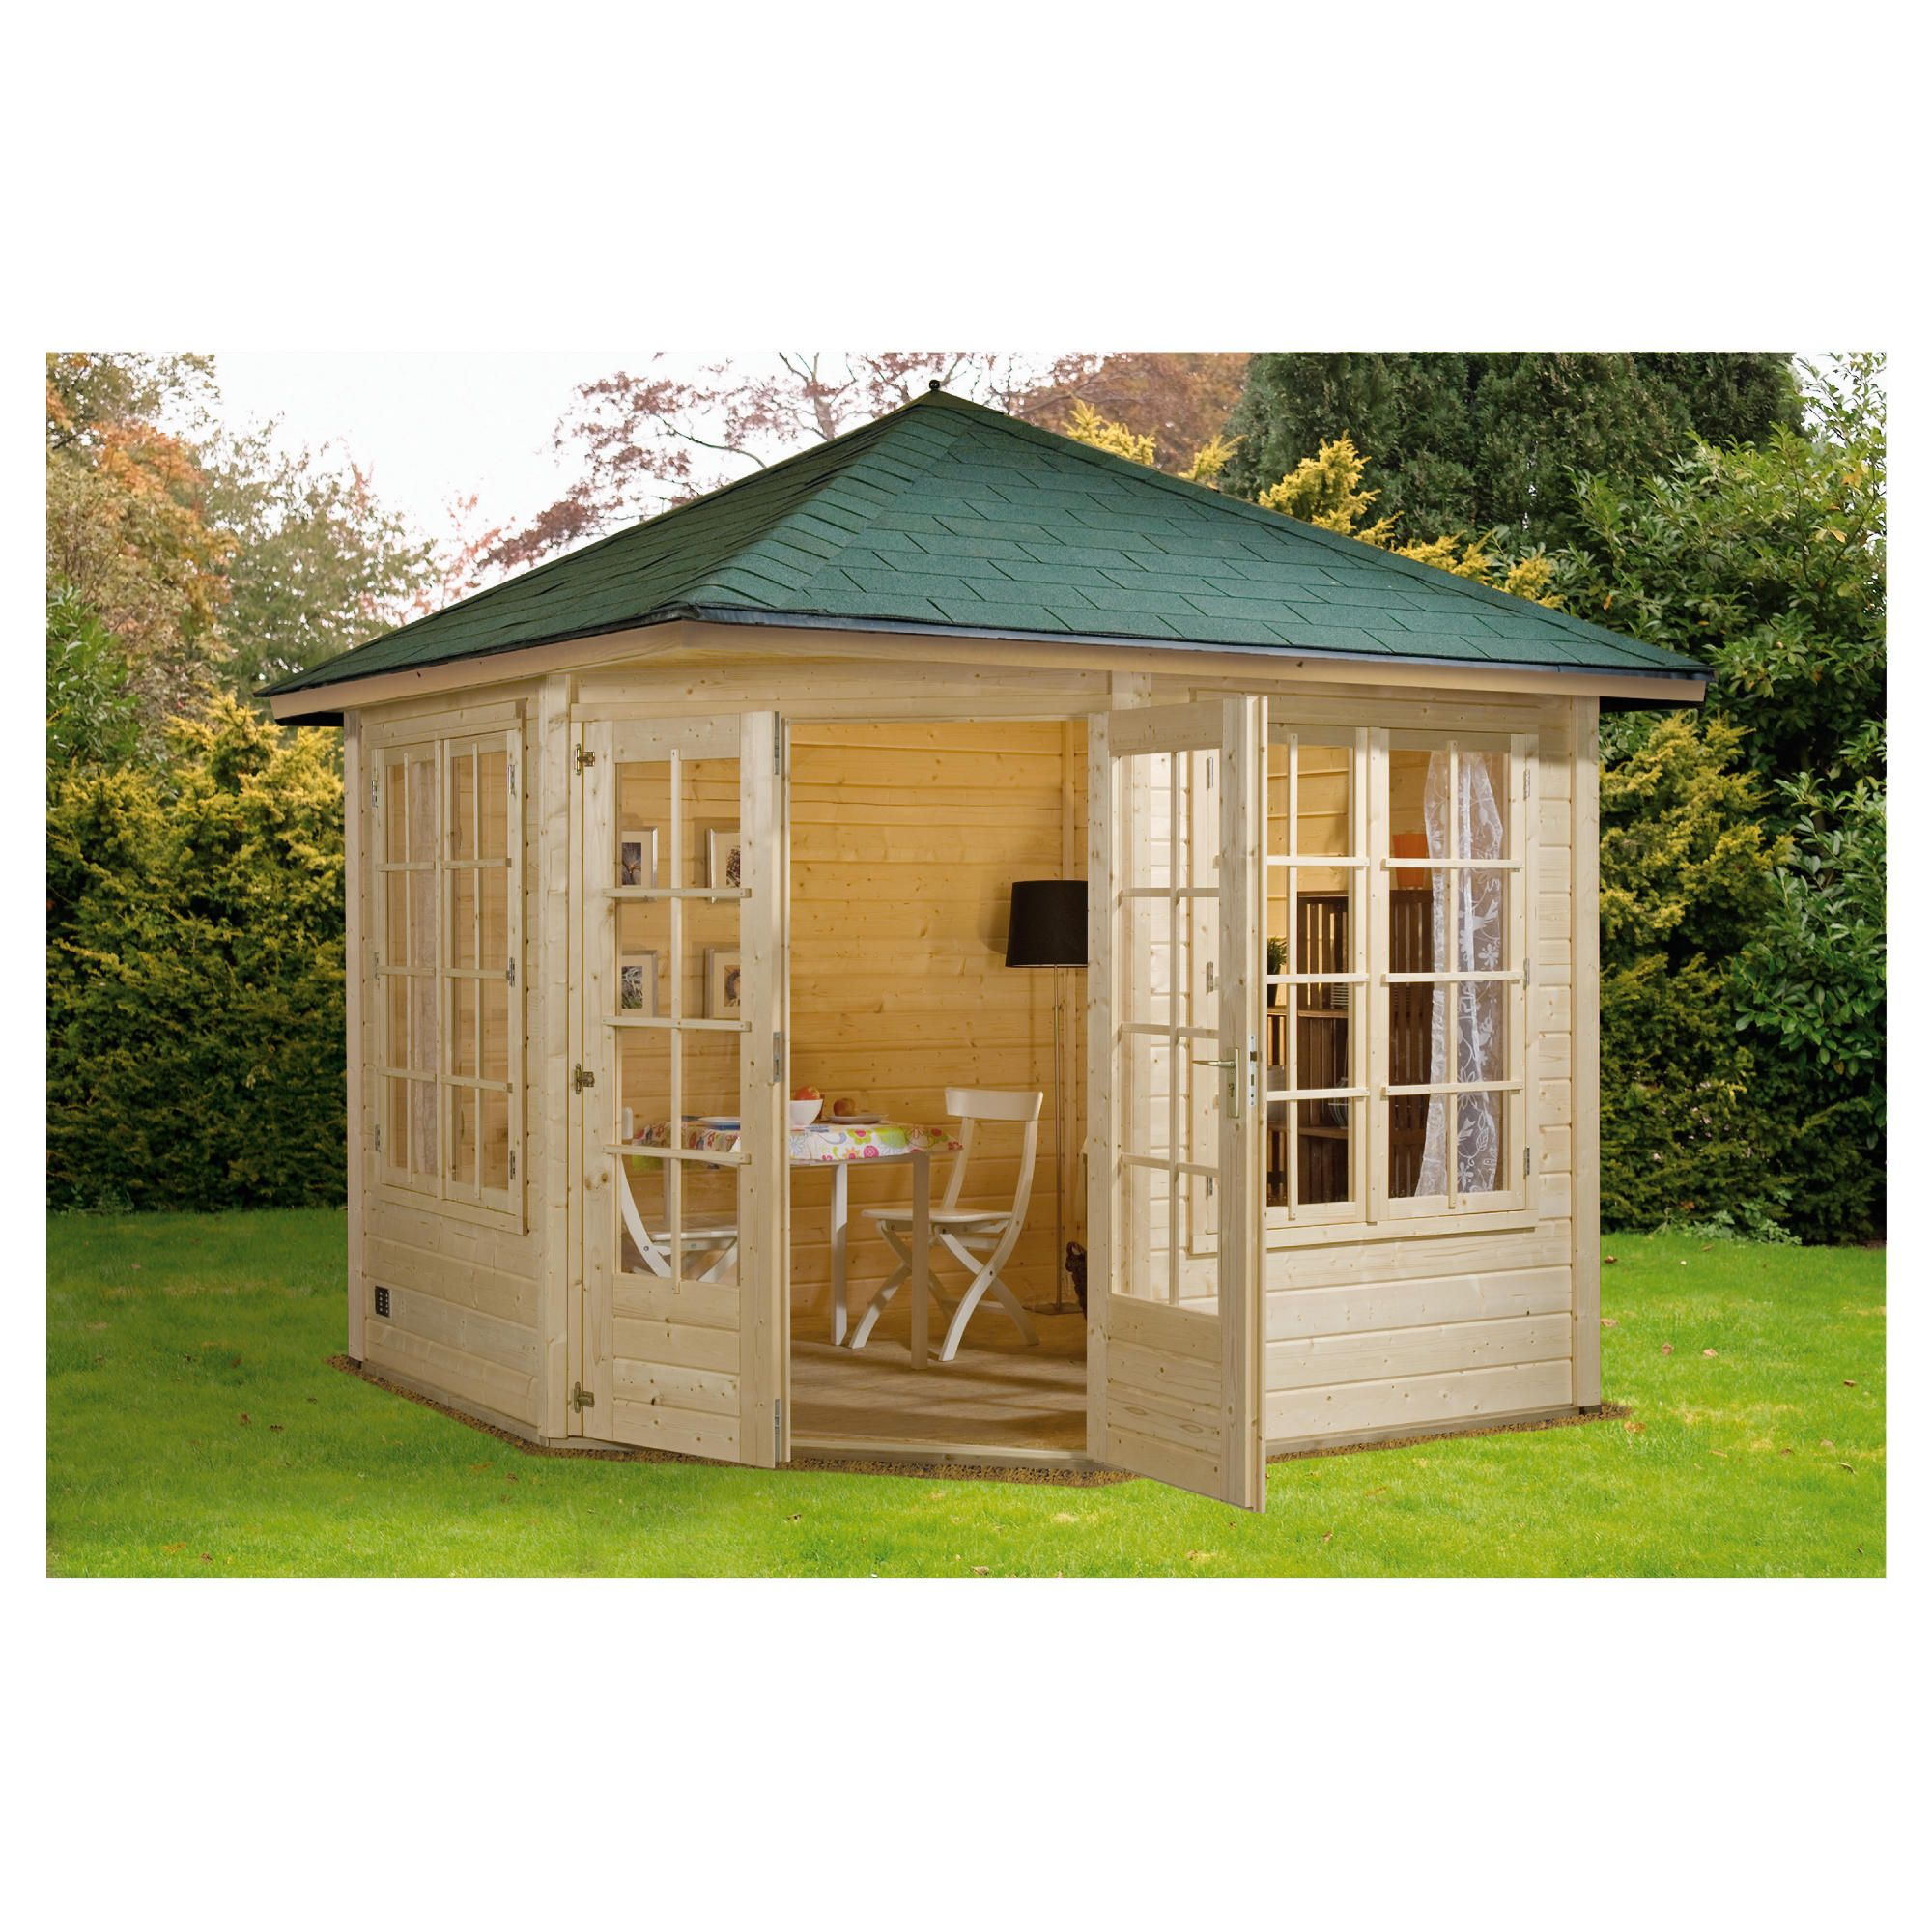 Finnlife VALO 212 Log Cabin at Tesco Direct